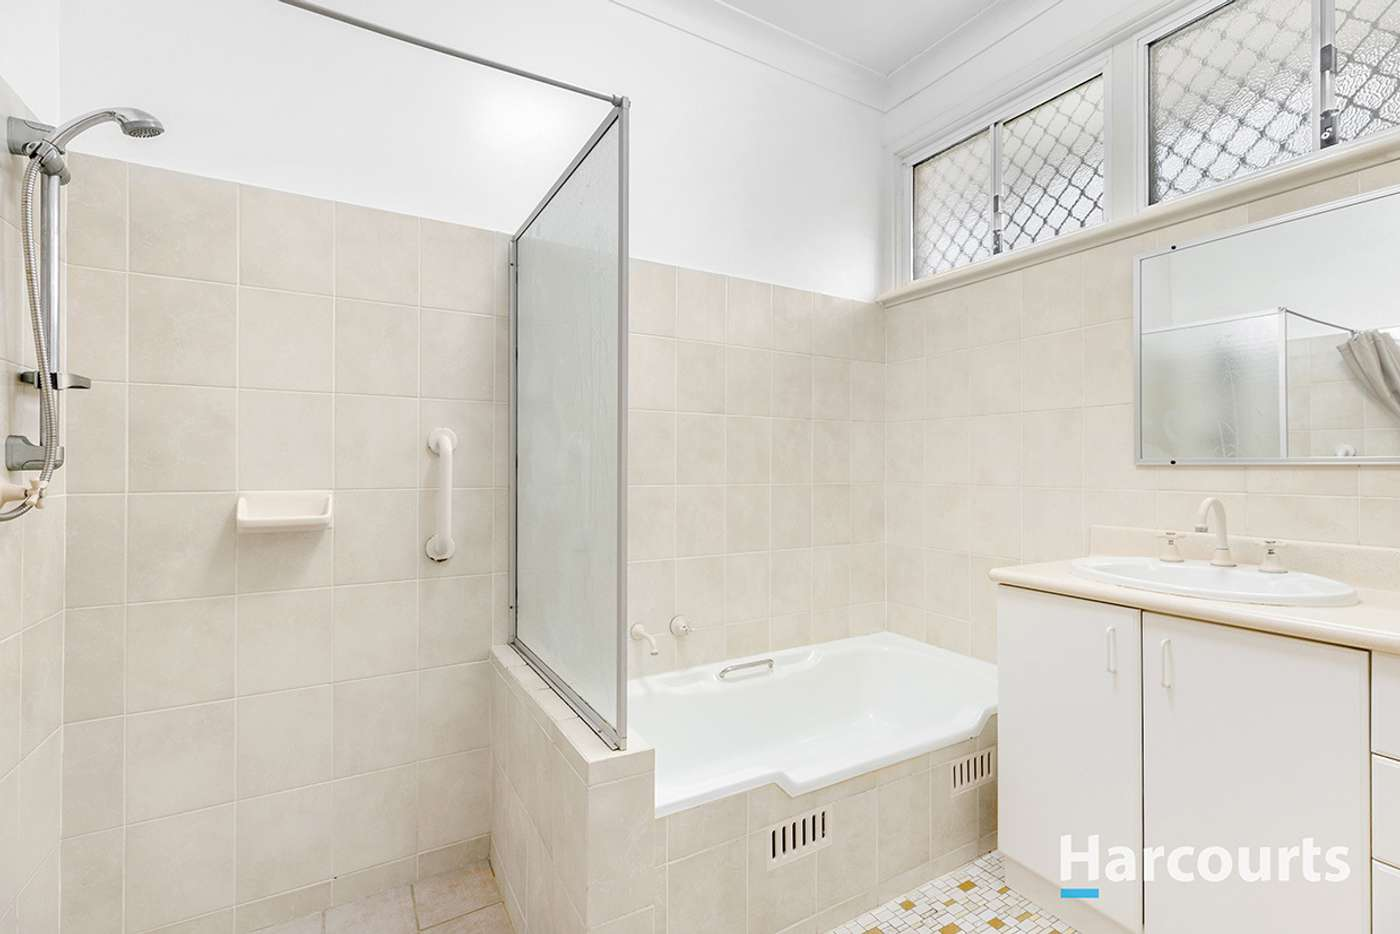 Sixth view of Homely house listing, 102 Carrington Parade, New Lambton NSW 2305